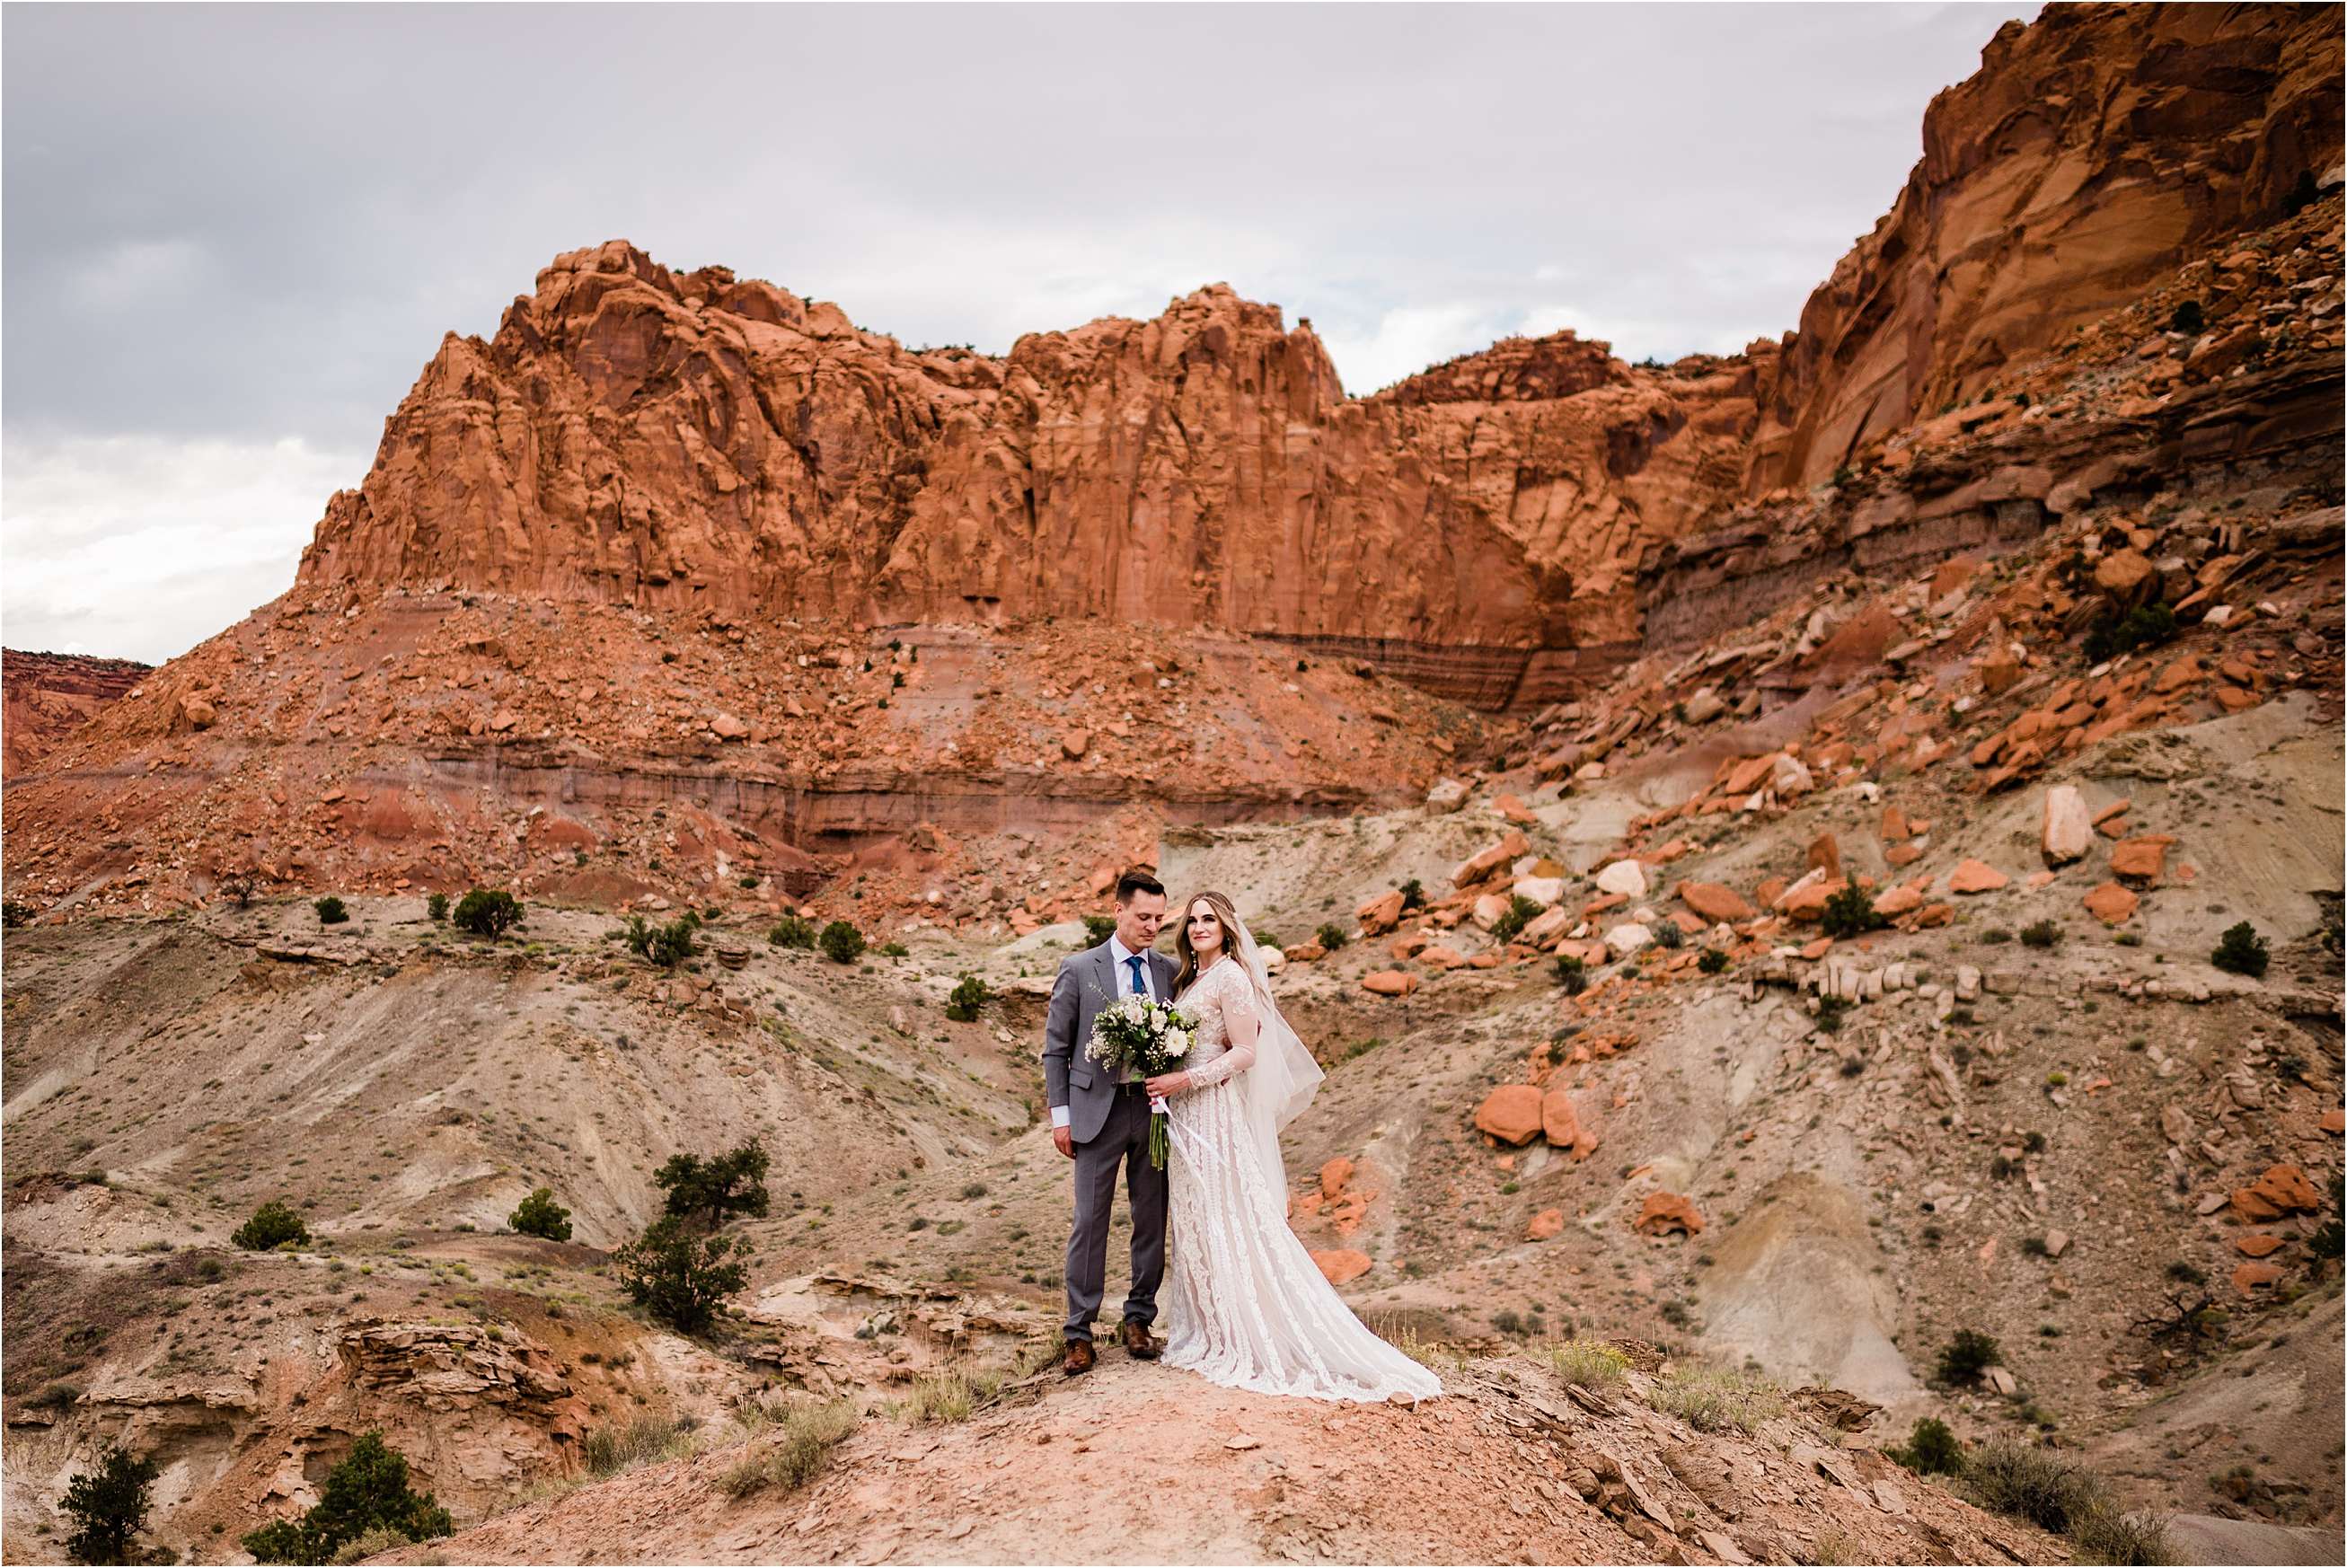 Beth & Austin's pre-wedding adventure at Capitol Reef National Park. Image by Forthright Photo.